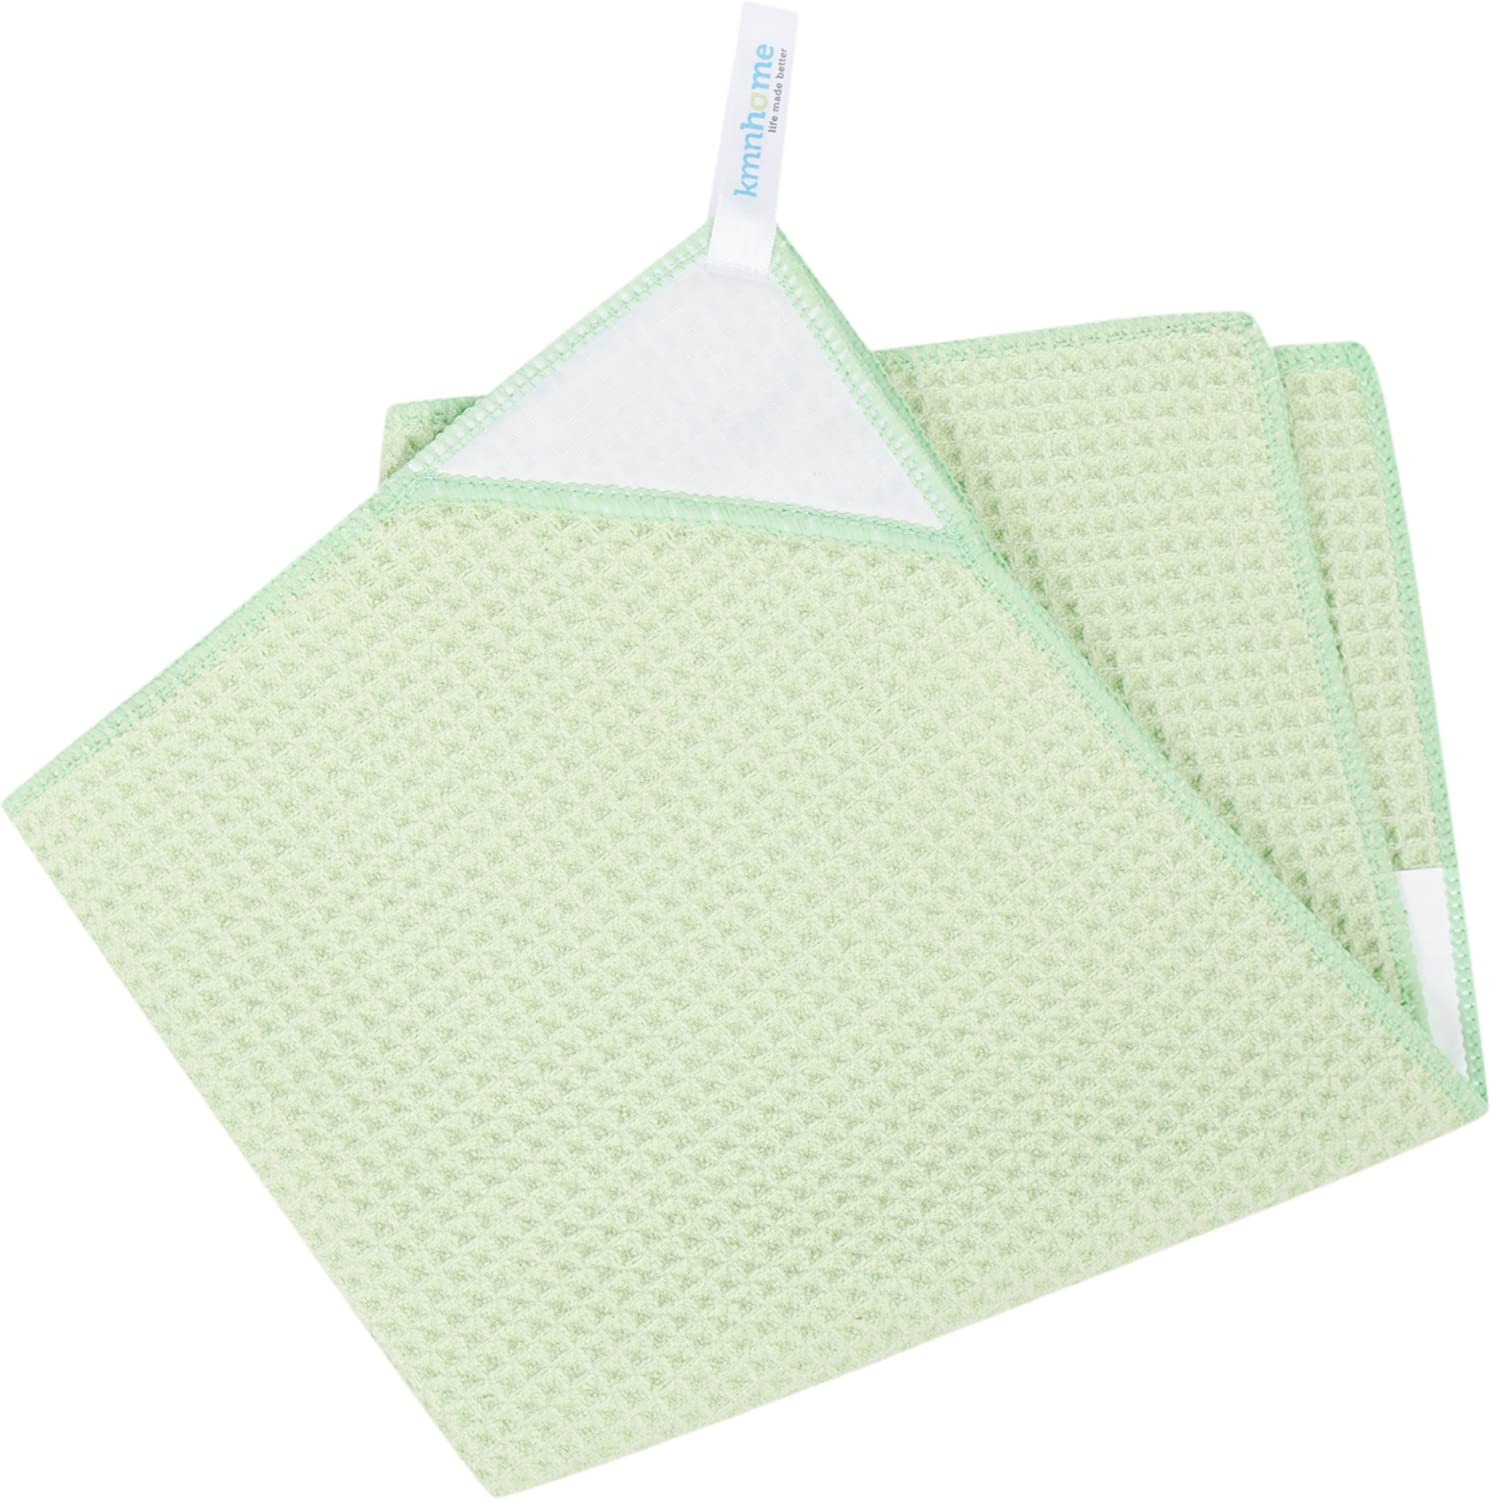 KMN Home Magnetic Microfiber Kitchen Towel, Waffle Weave Dish Towel with Magnetic Towel Holder, Green